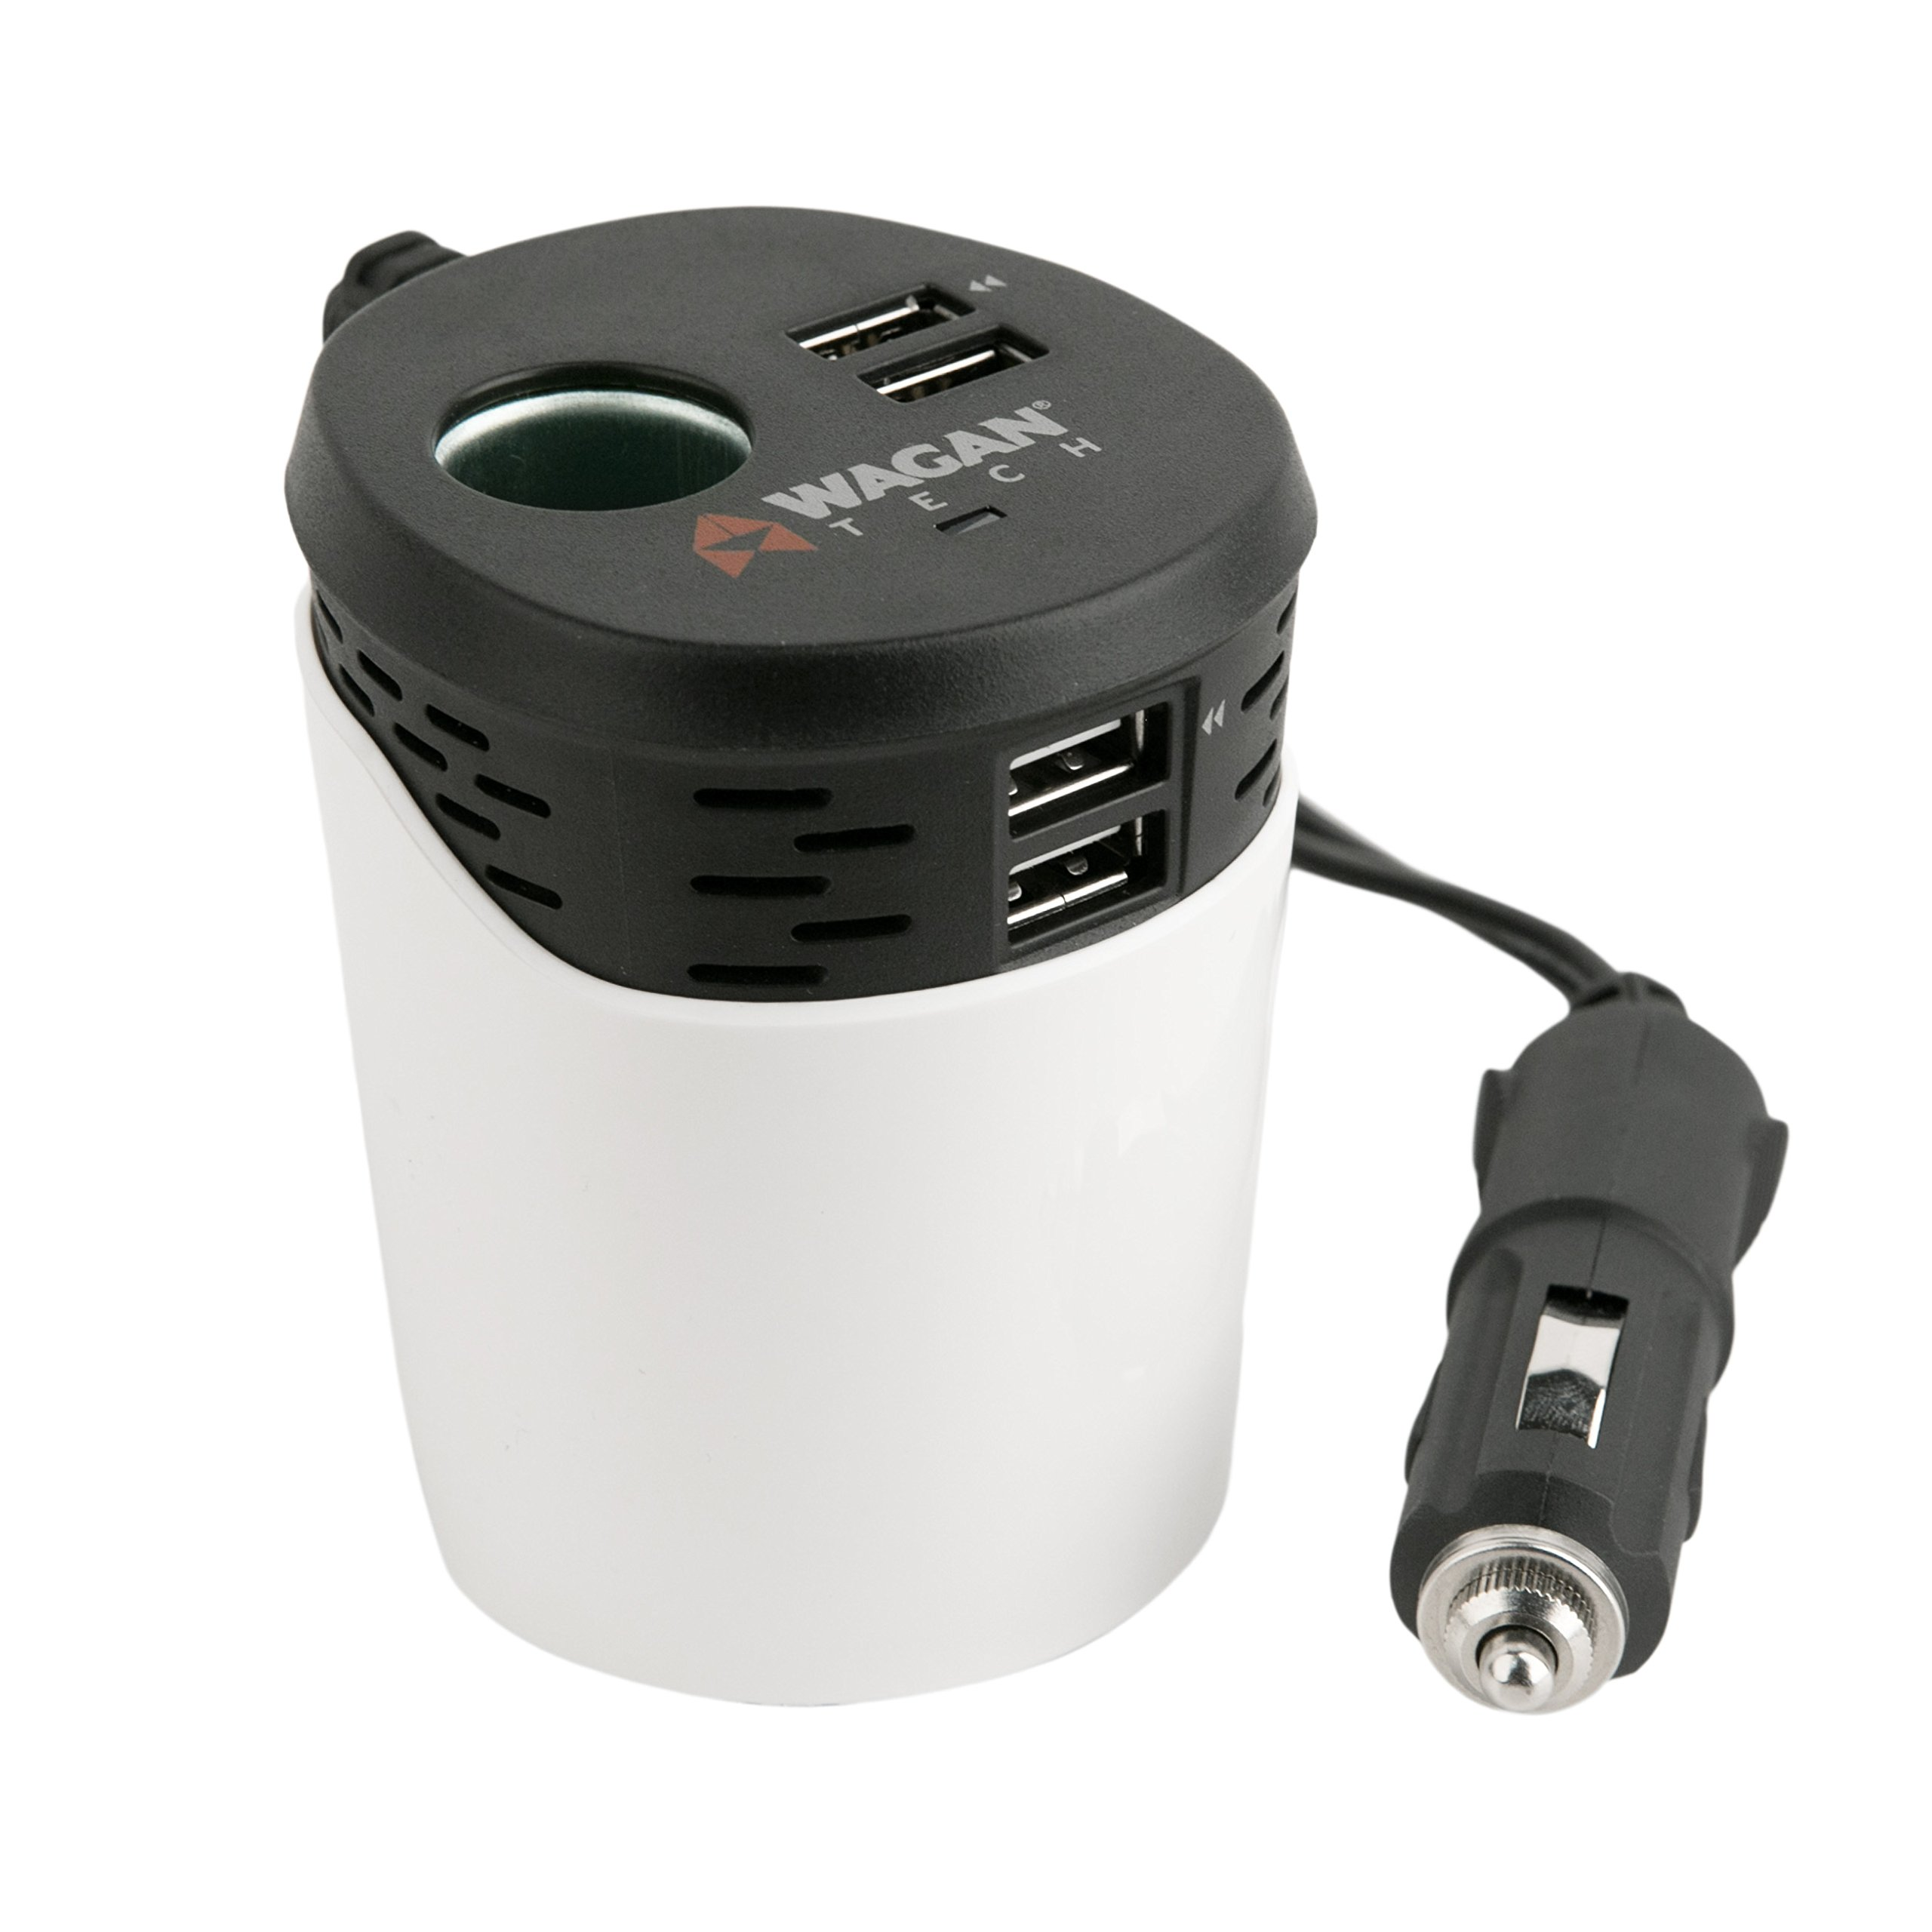 Wagan (EL2886) Travel Charge Series USB 6.2 Amp Quad Power Cup